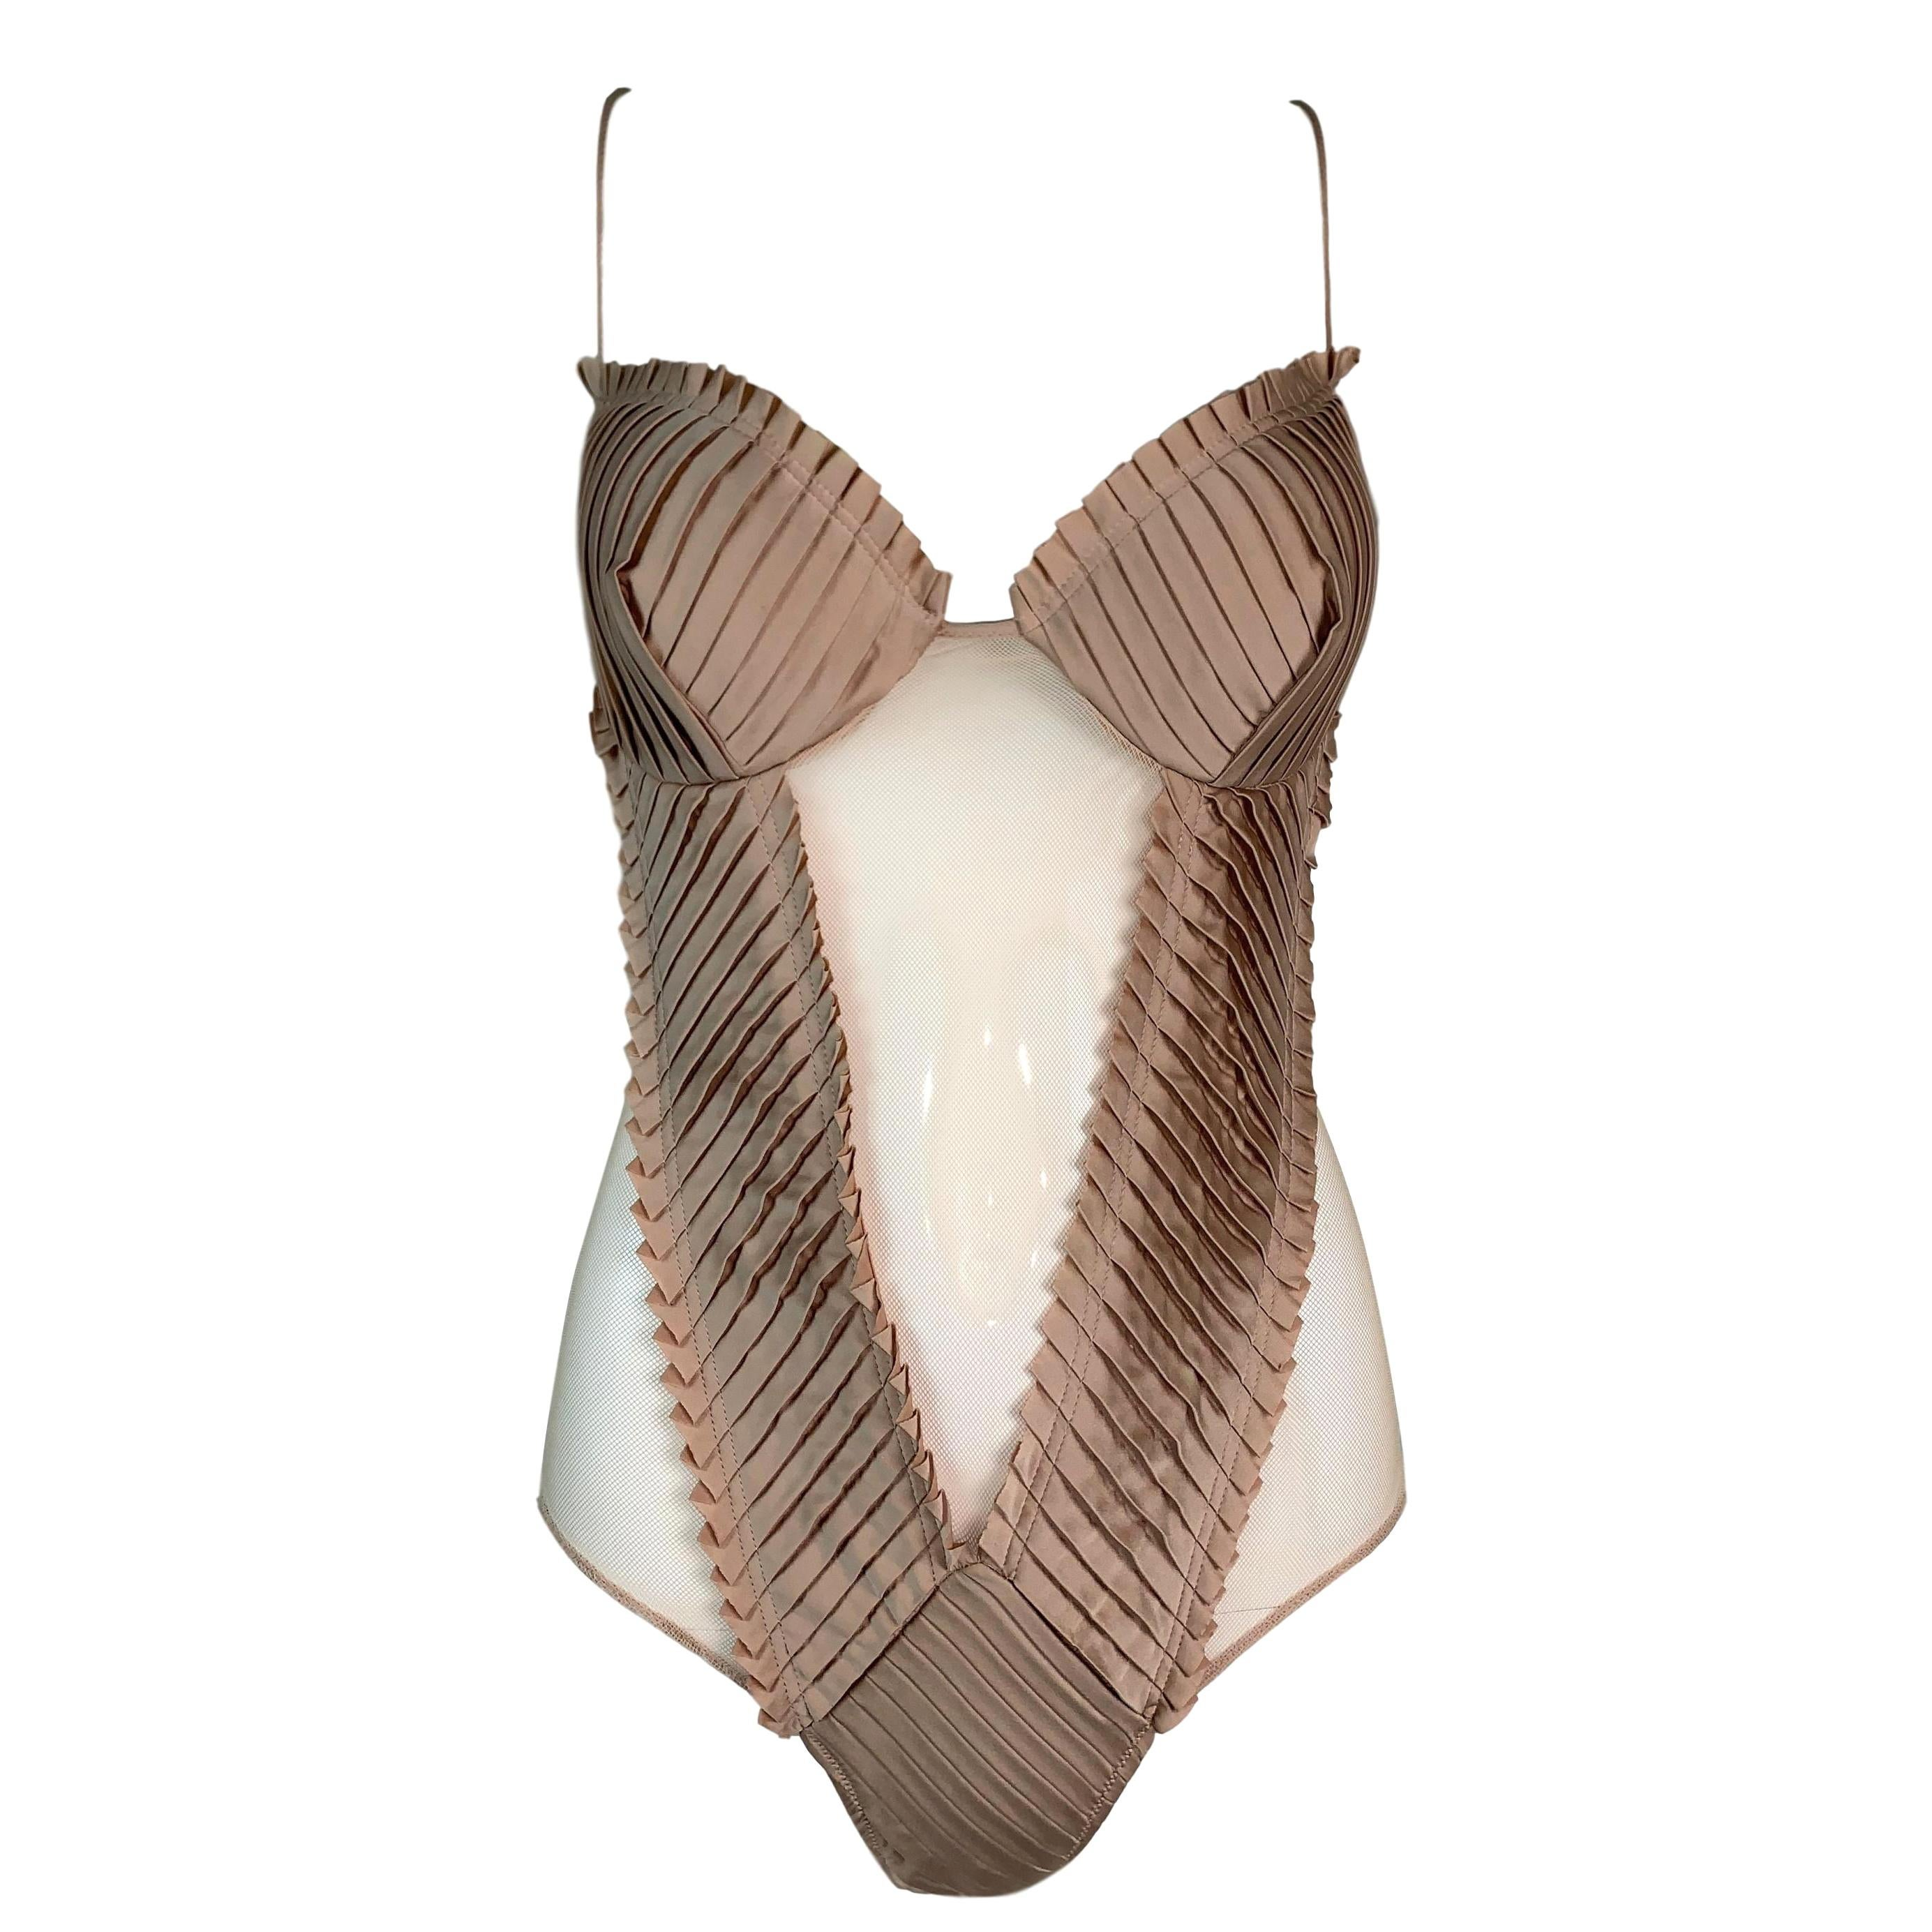 S/S 2004 Gucci by Tom Ford Runway Sheer Nude Mesh Bodysuit Top